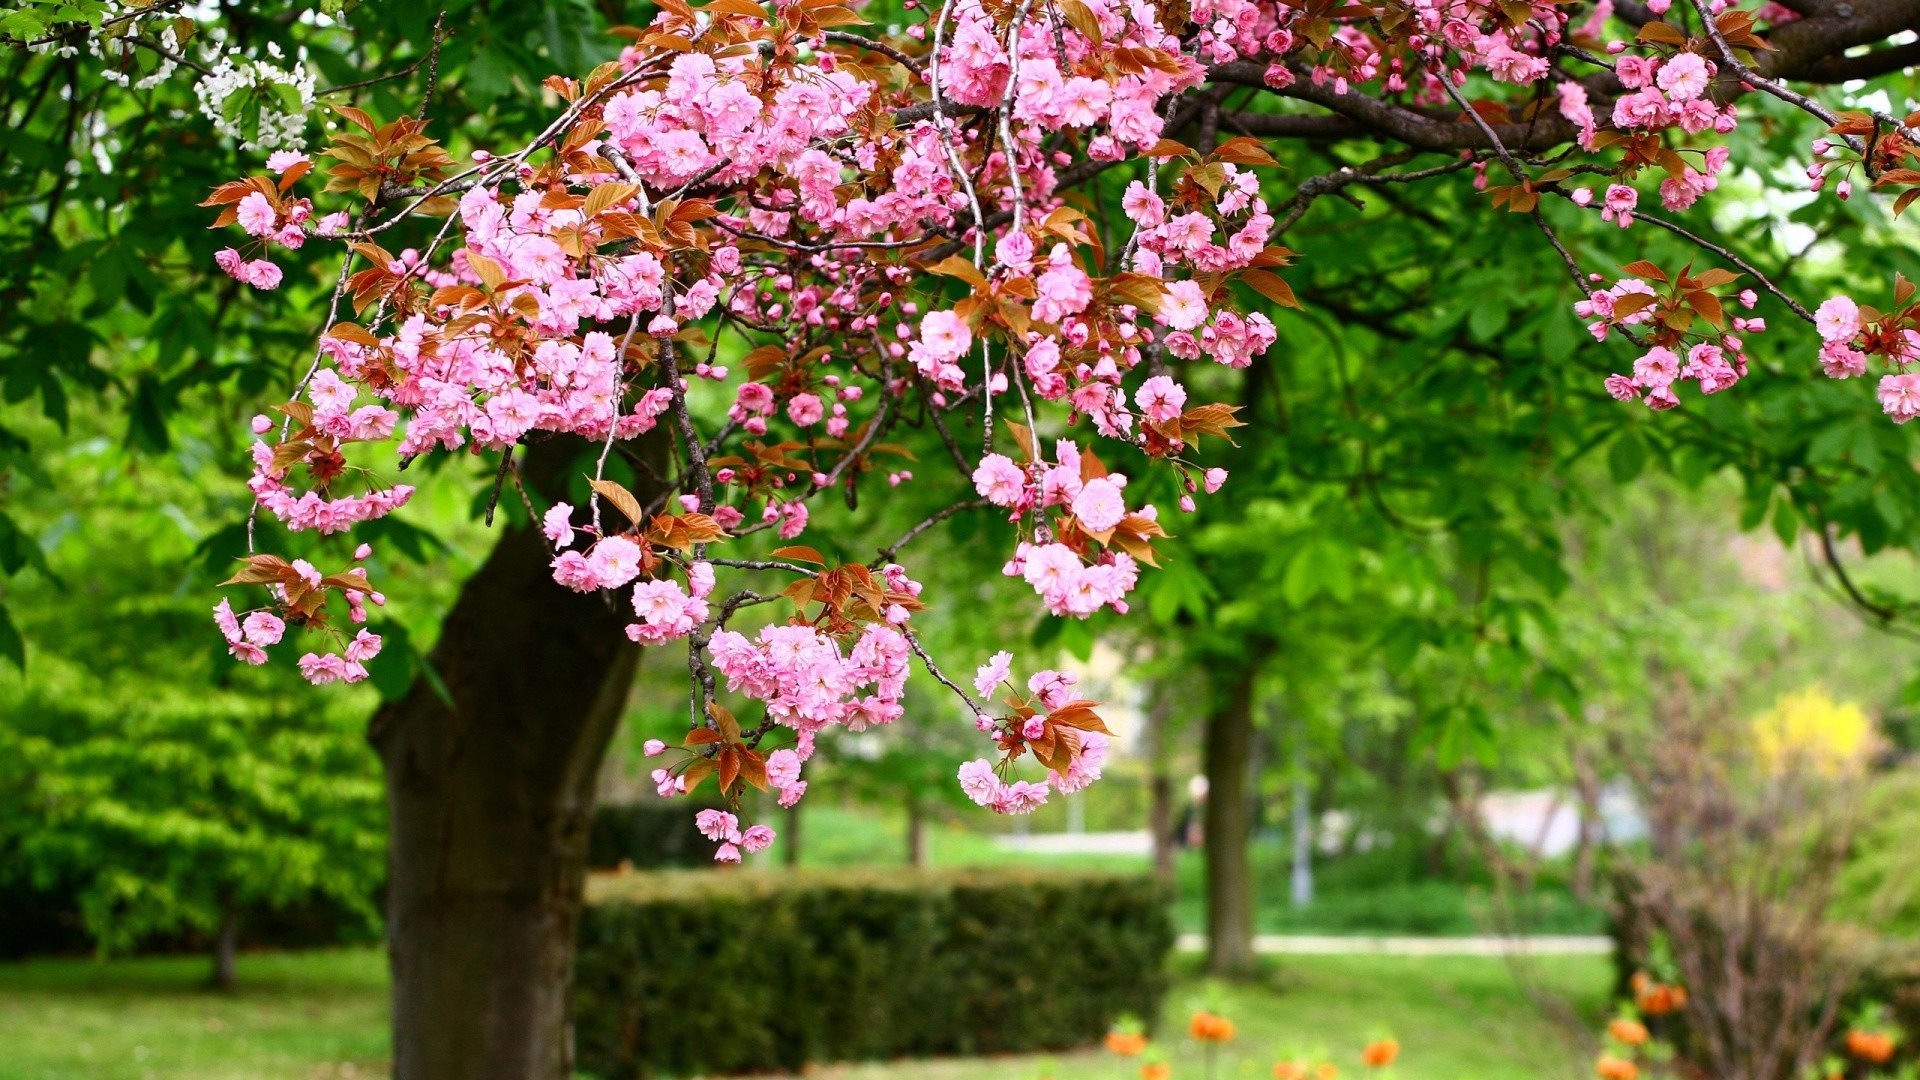 1920x1080 Spring Flowers Live Wallpaper Android Apps on Google Play